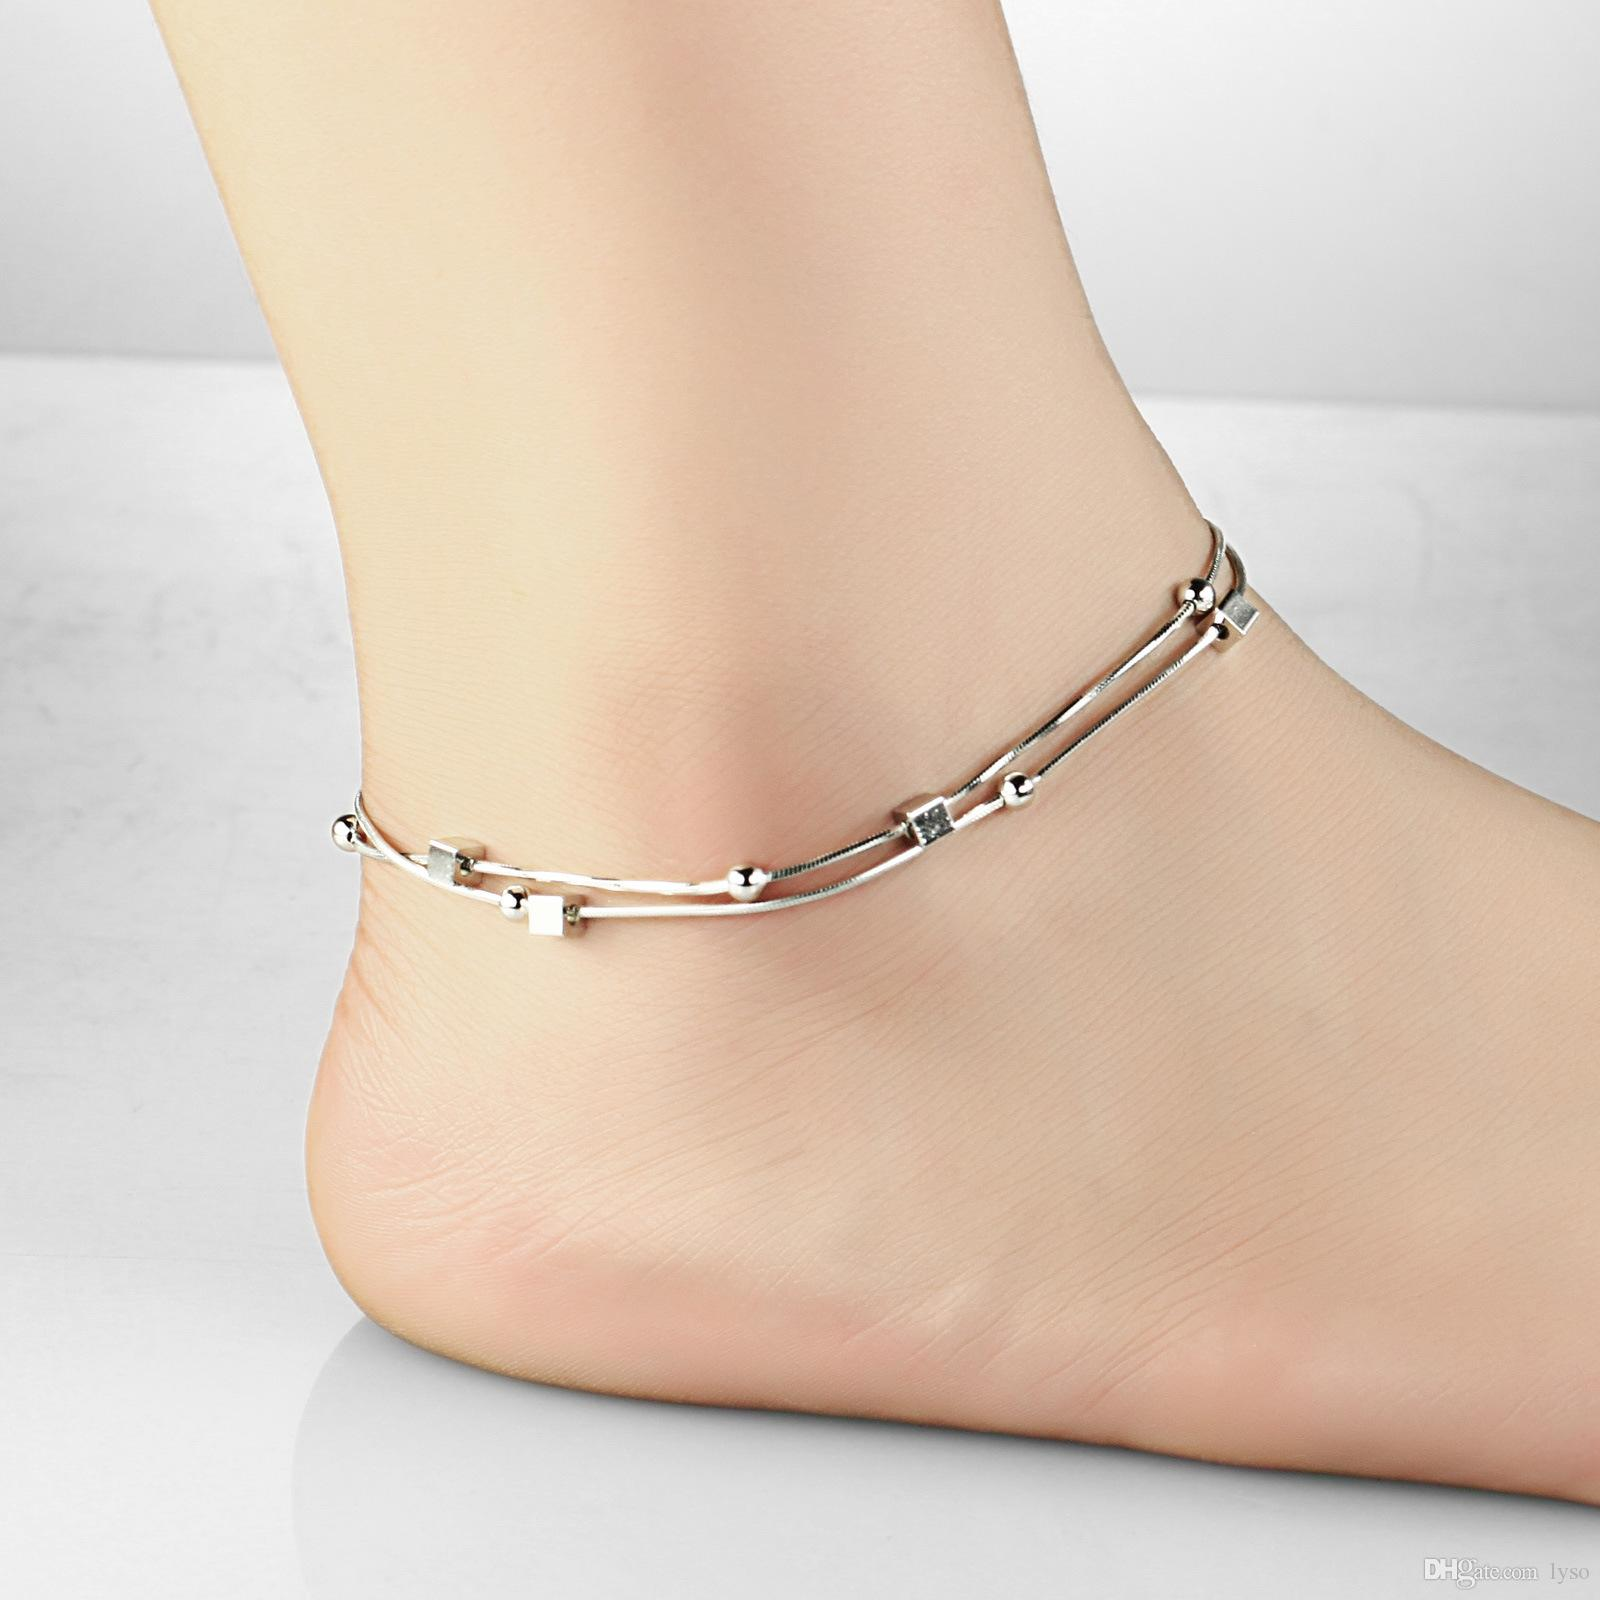 therapy arthritis s shop copper pure anklet products and large for carpal magnetic relief women bracelet lifestyle smarter elegant tunnel pain